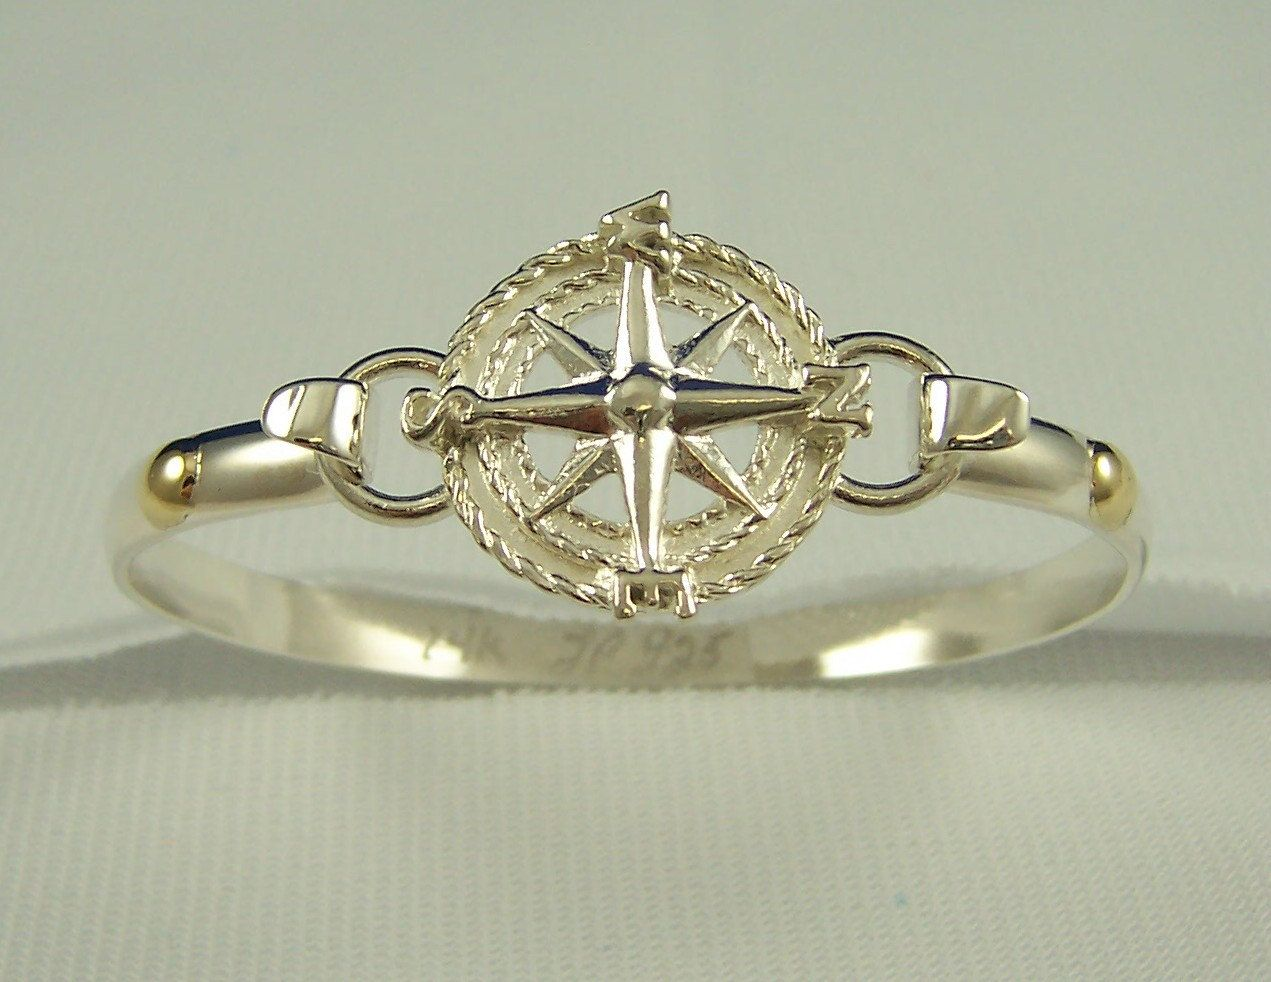 Sailors Compass Rose Convertible Bracelet Sterling Silver with 14k